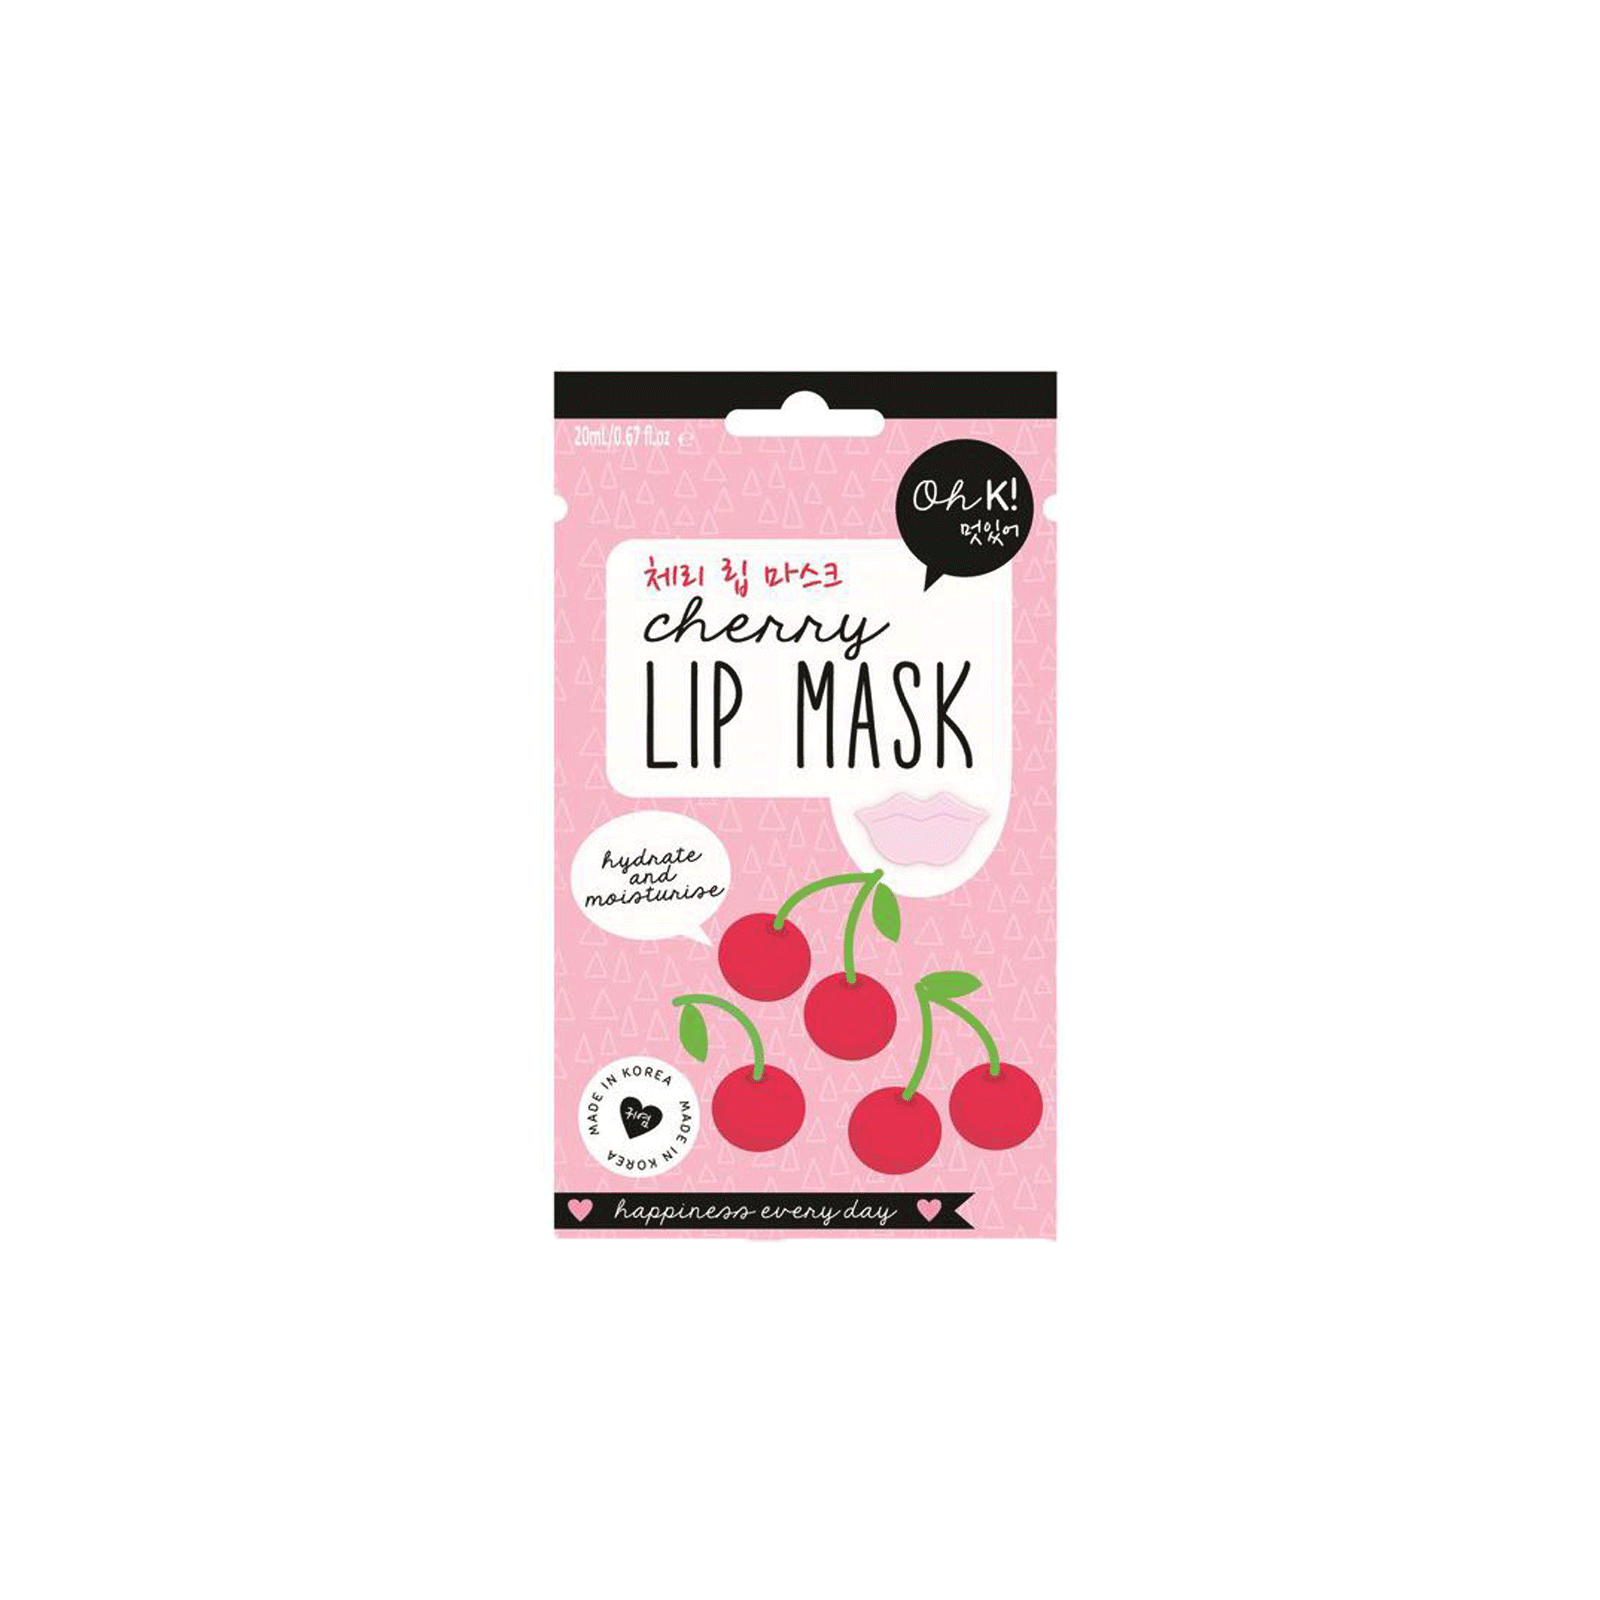 Oh K! Cherry Lip Mask